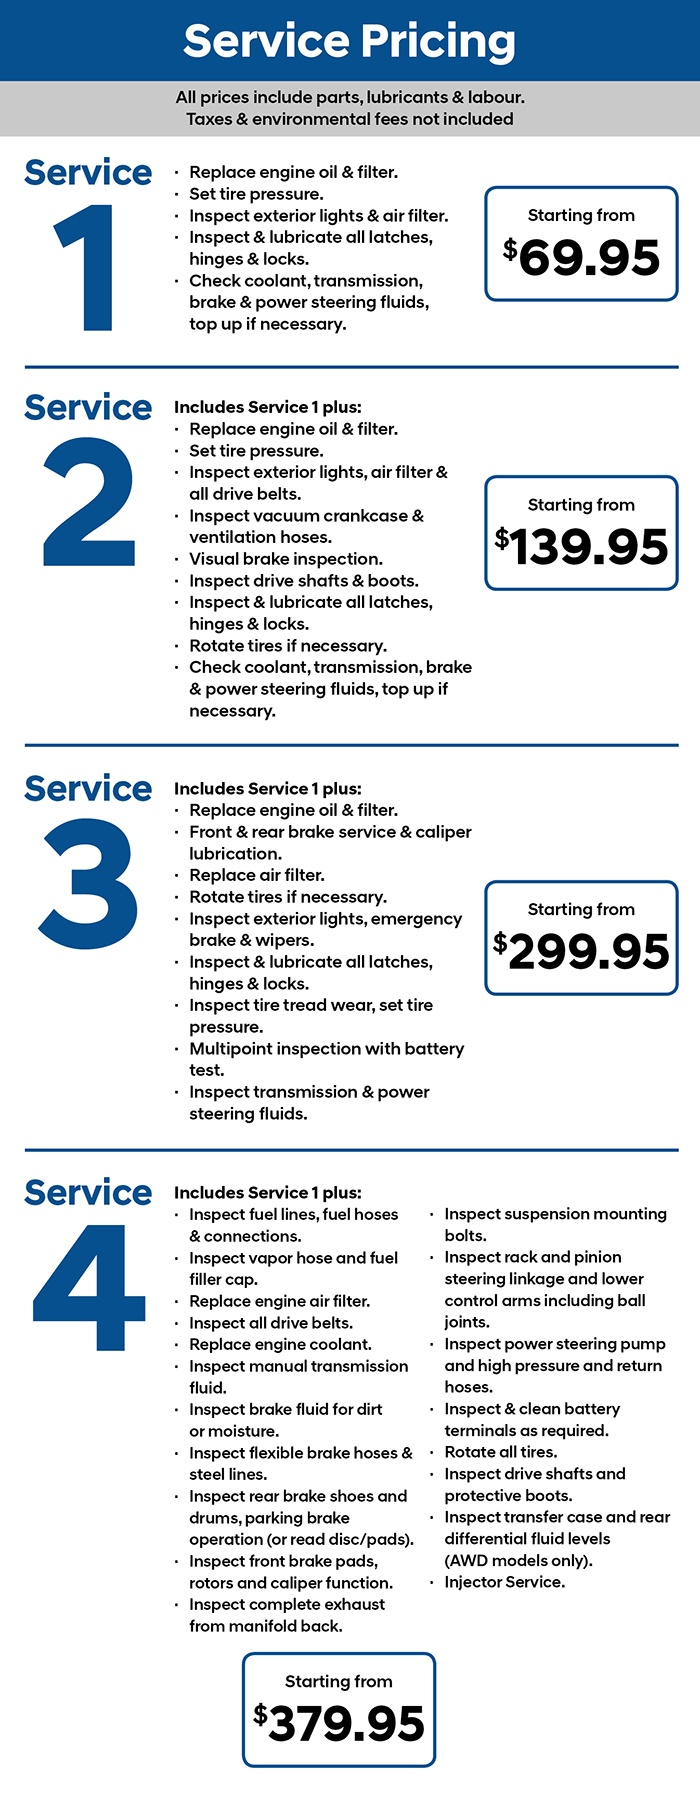 19790 TH July Service Pricing for Website